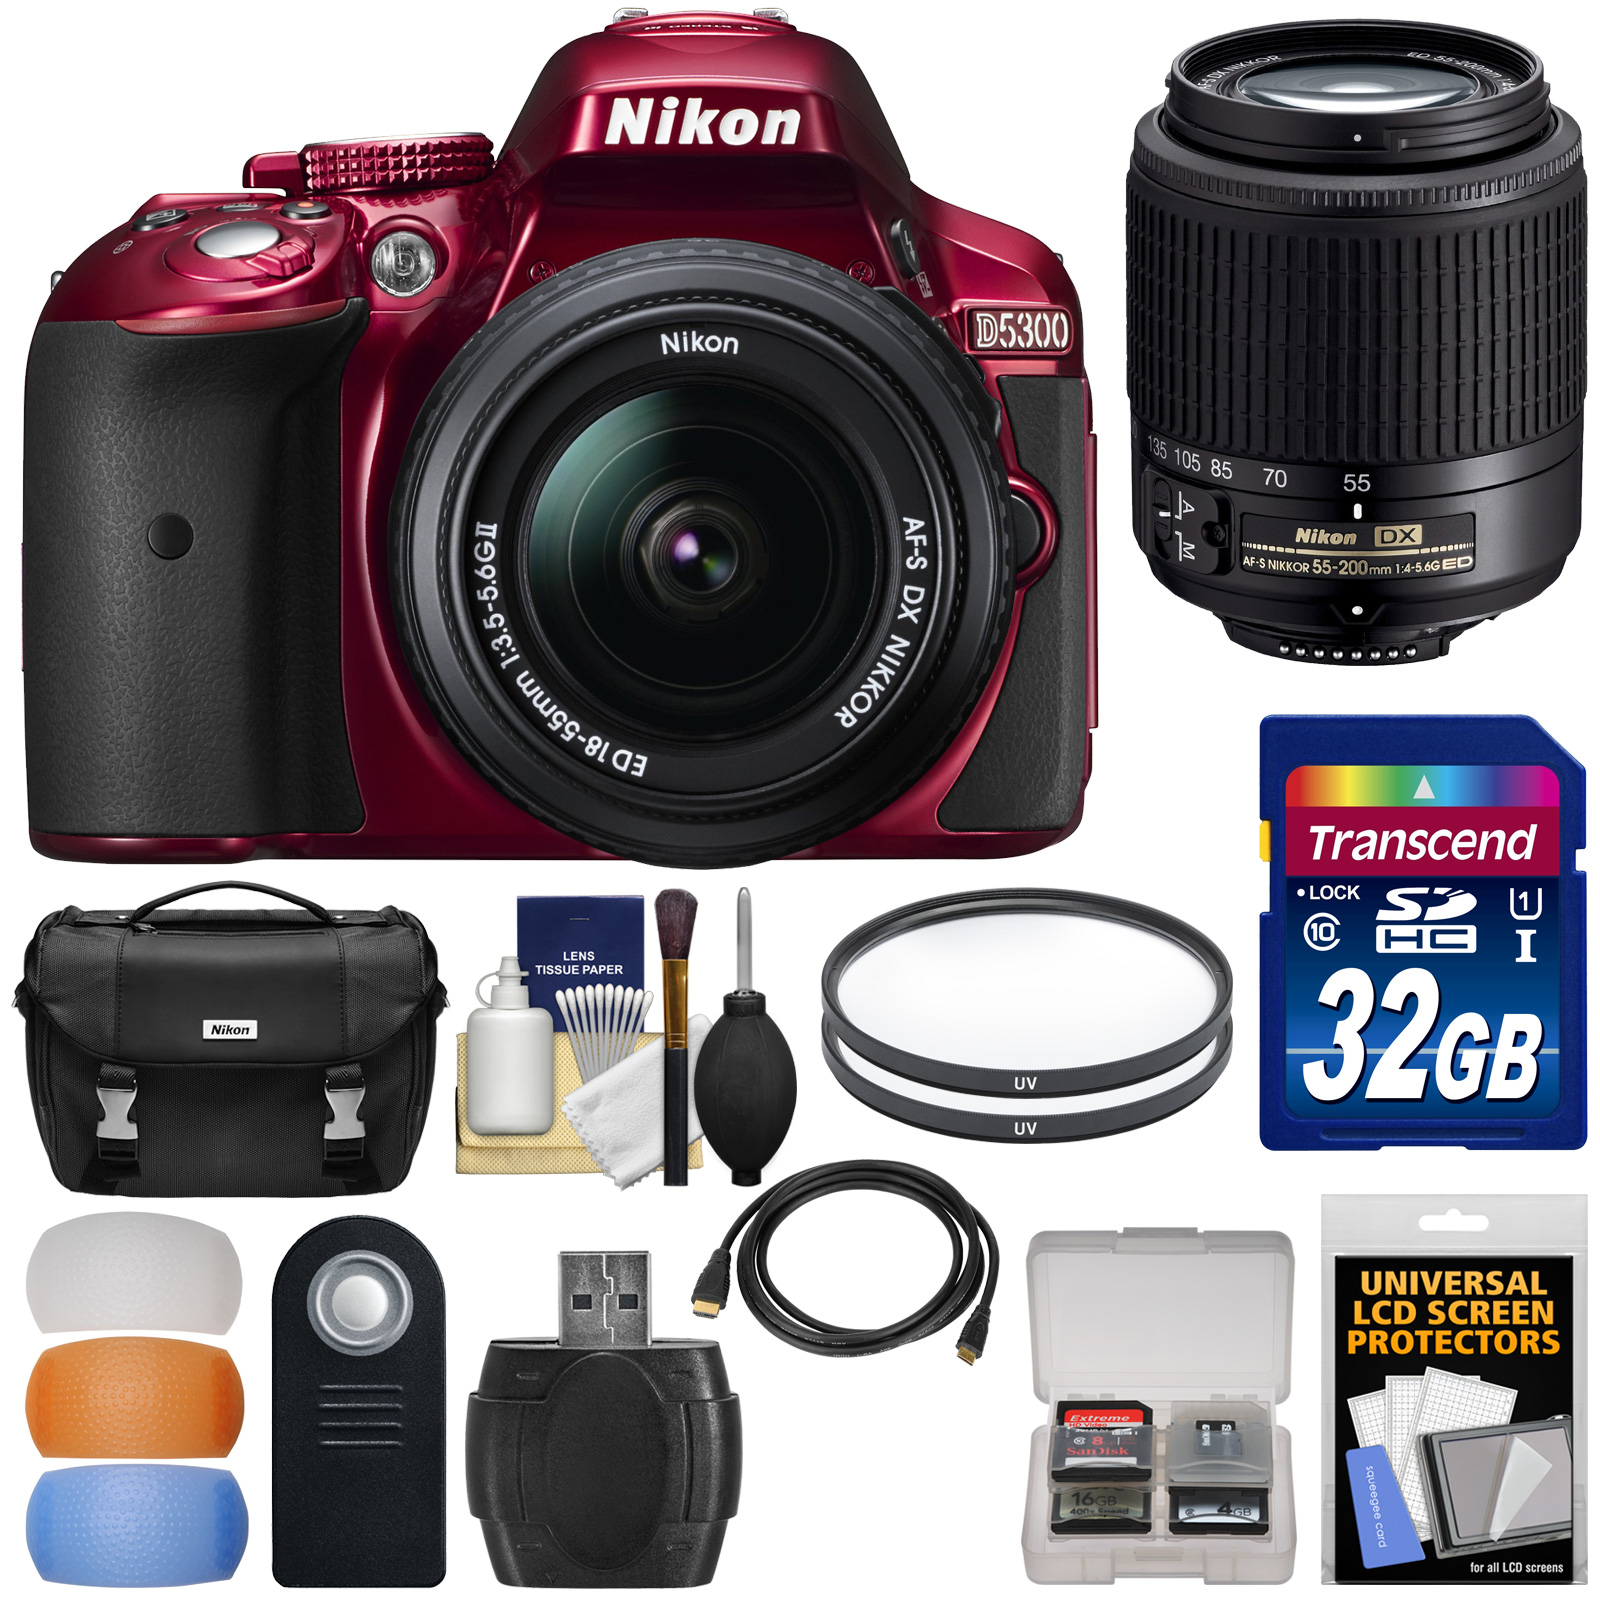 Nikon D5300 Digital SLR Camera & 18-55mm G DX II AF-S Zoom (Red) with 55-200mm DX AF-S Lens   32GB Card   Case   Filters Kit